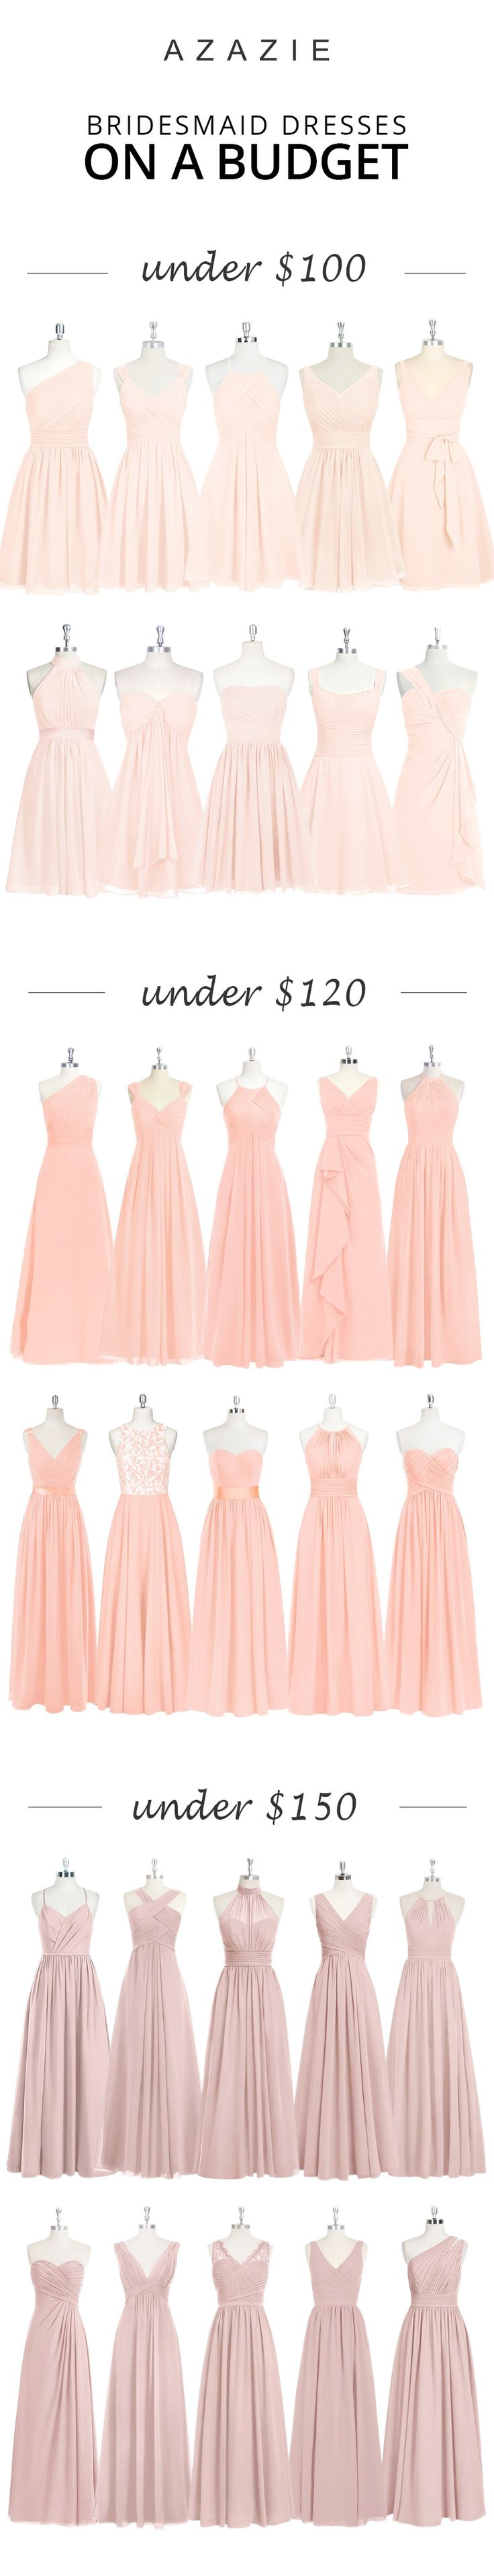 Check out our 100+ styles from long, elegant gowns, to fun and flirty dresses. Azazie focuses on making high-quality dresses with affordable prices. We believe that every woman should be able to wear something that they love and feel comfortable in.